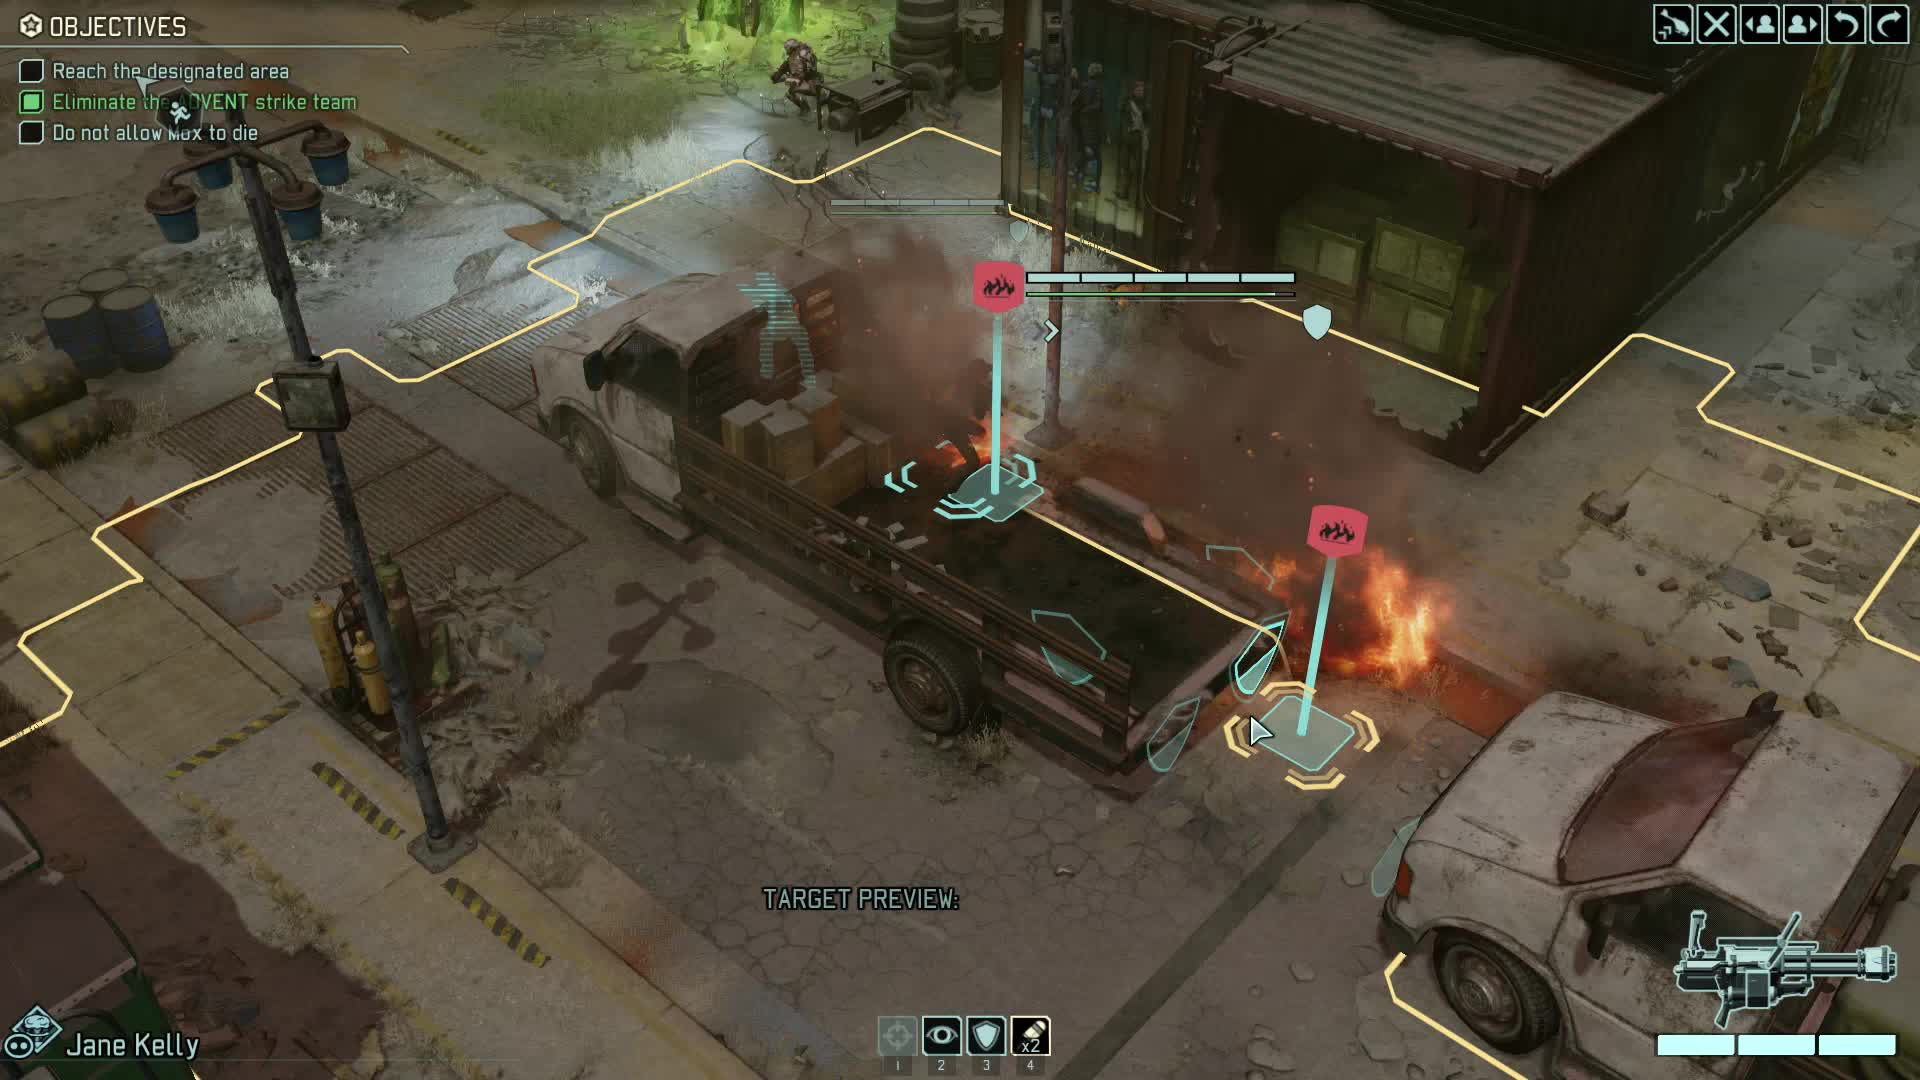 war of the chosen, xcom 2, XCOM Soldiers finally learned to stop, drop and roll GIFs